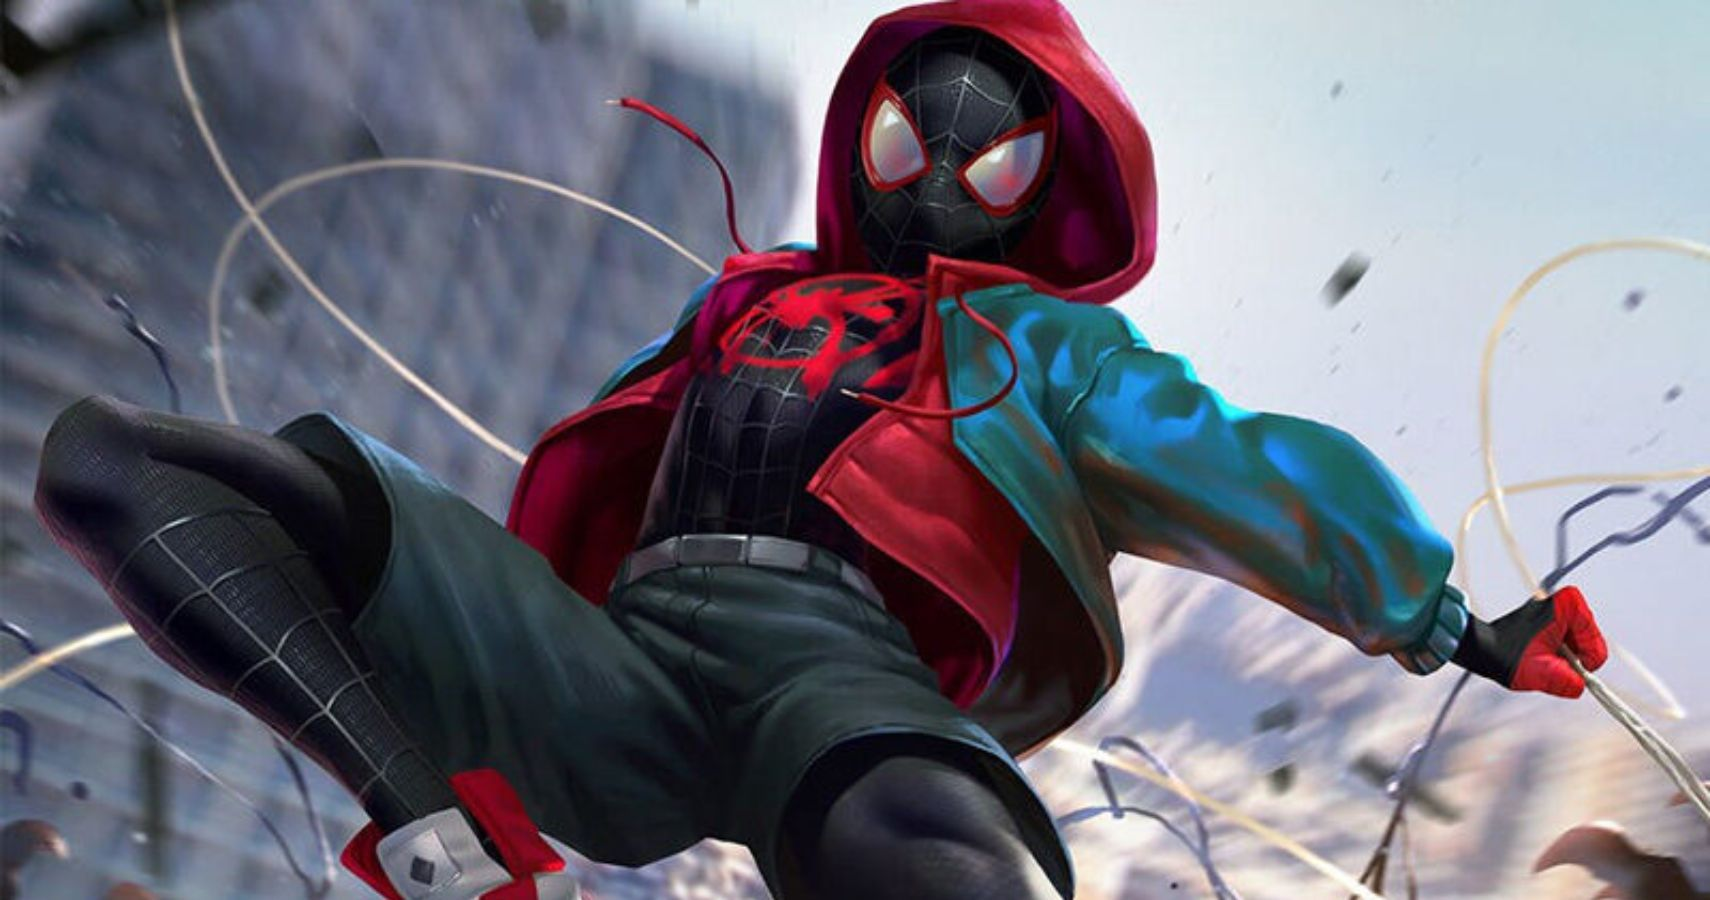 Will Miles Morales Appear In Spider-Man: No Way Home? This Easter Egg Suggests He will